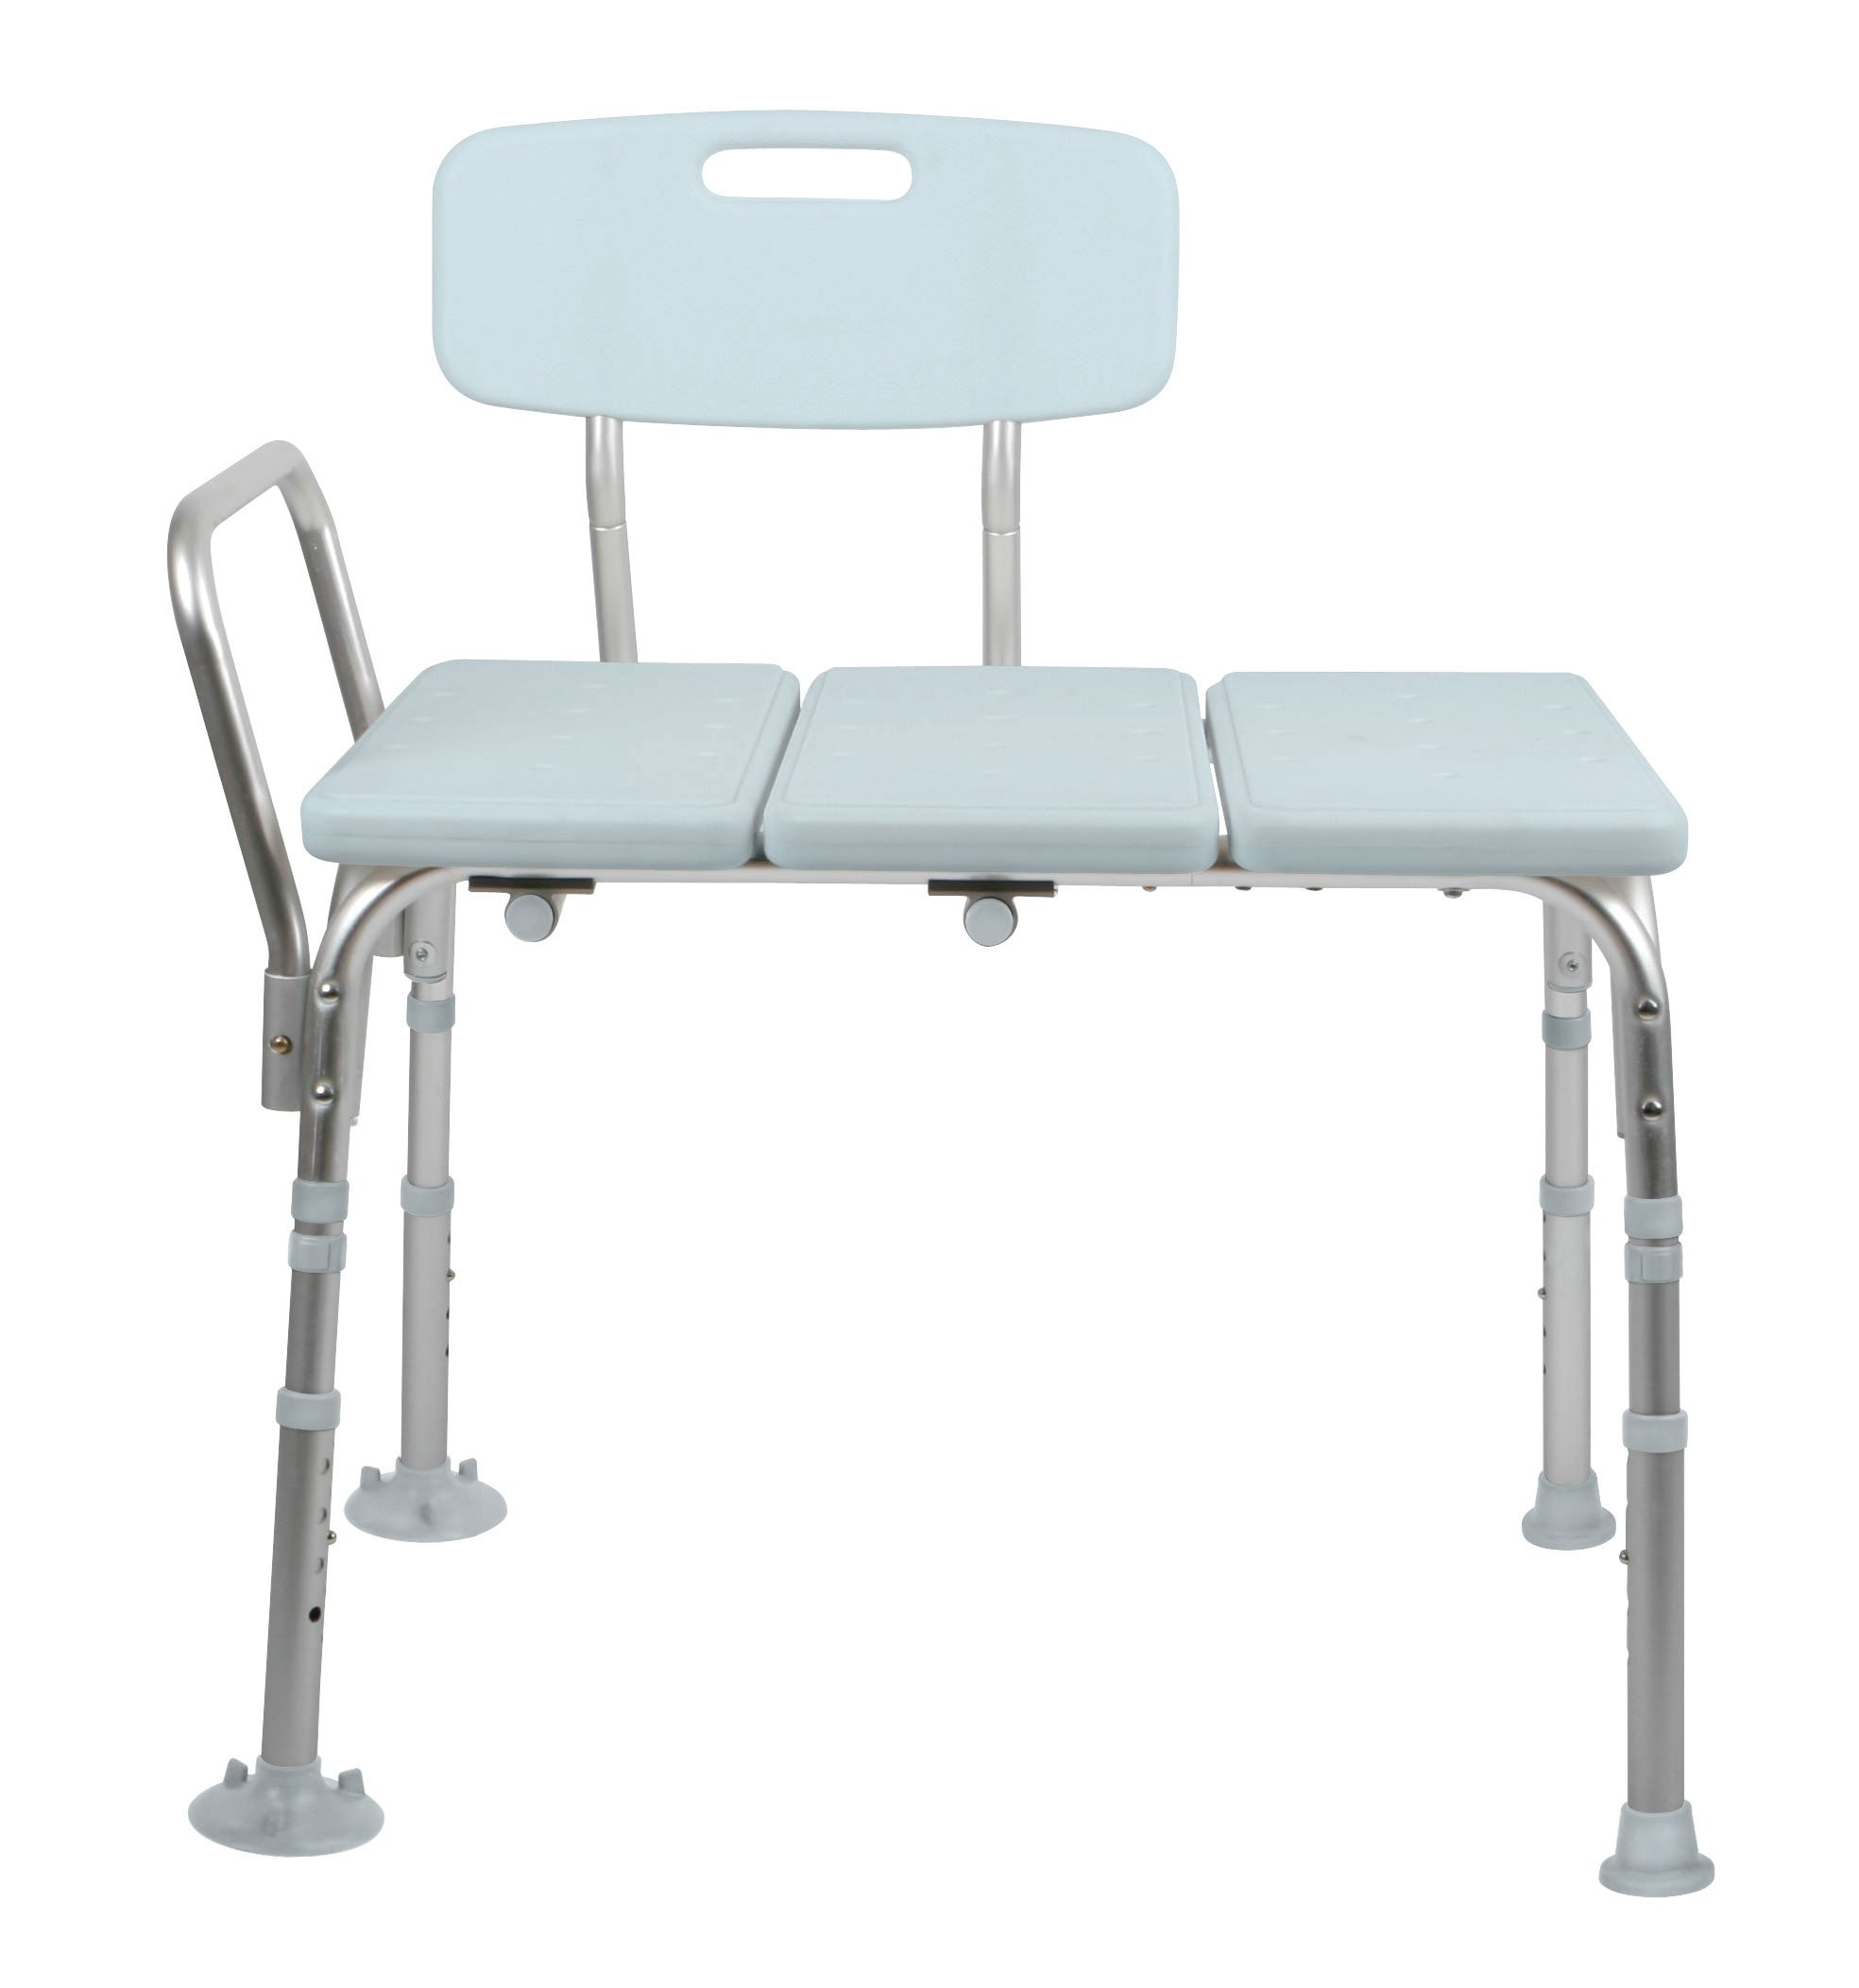 Medline Microban Medical Transfer Bench with Antimicrobial Protection for Bath Safety, Shower Use, and Bacterial Protection